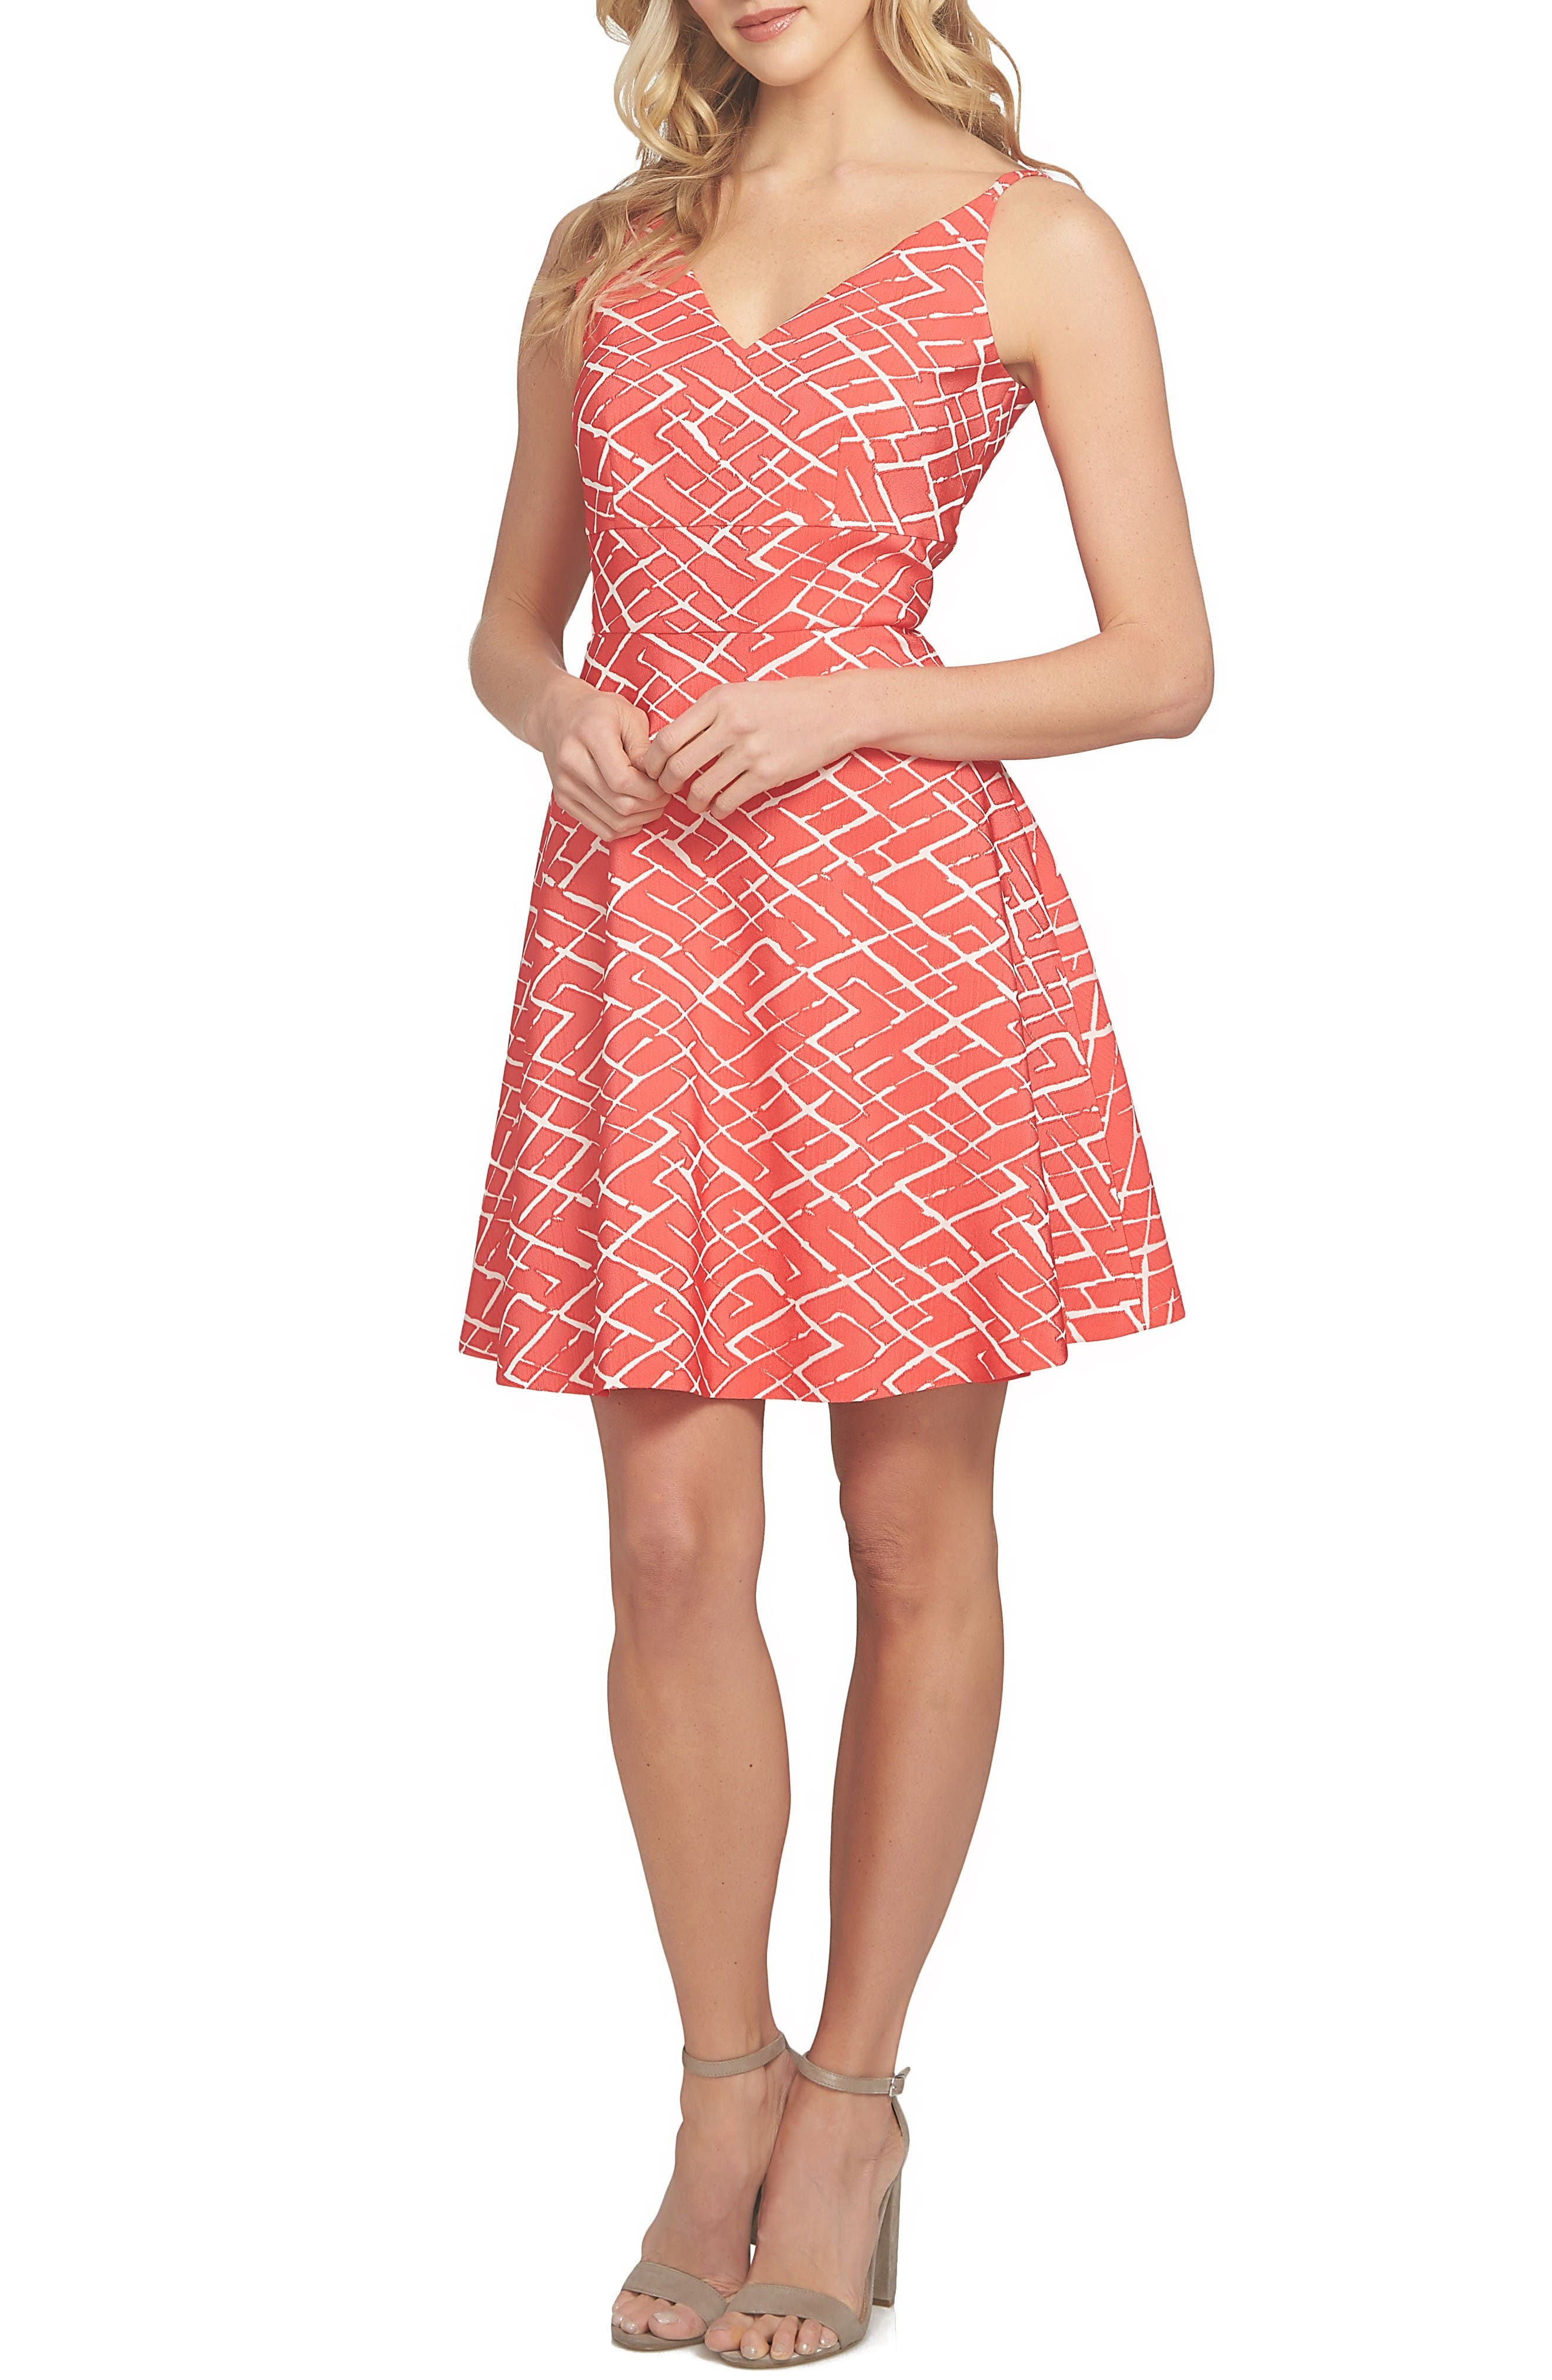 Miley Print Fit & Flare Dress,                             Main thumbnail 1, color,                             Fiery Red